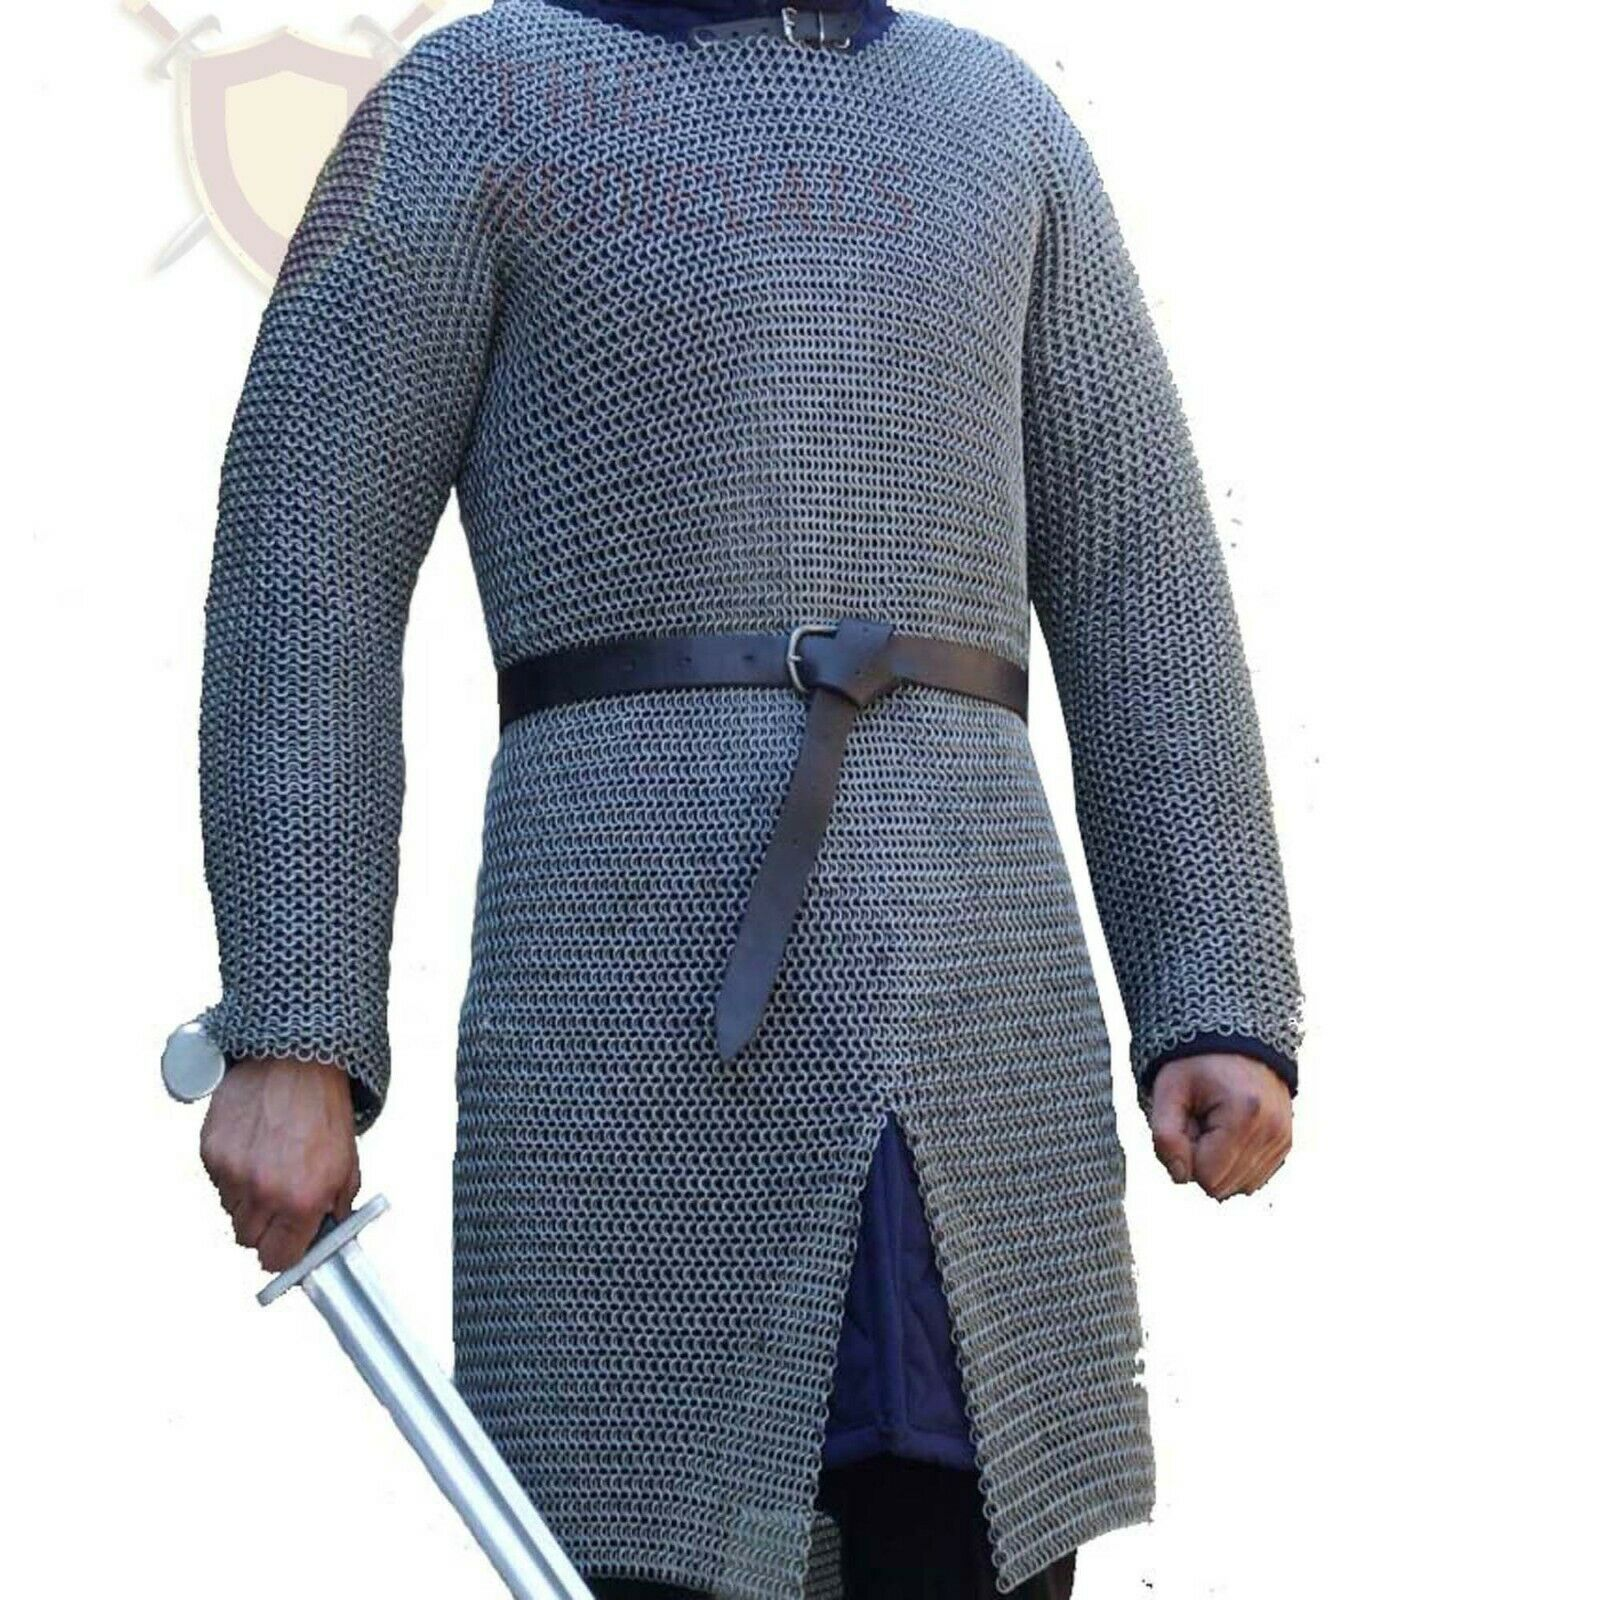 THE MEDIEVALS 10 MM ID Butted Chainmail Hauberk Full Sleeve Shirt Mild Steel 16G